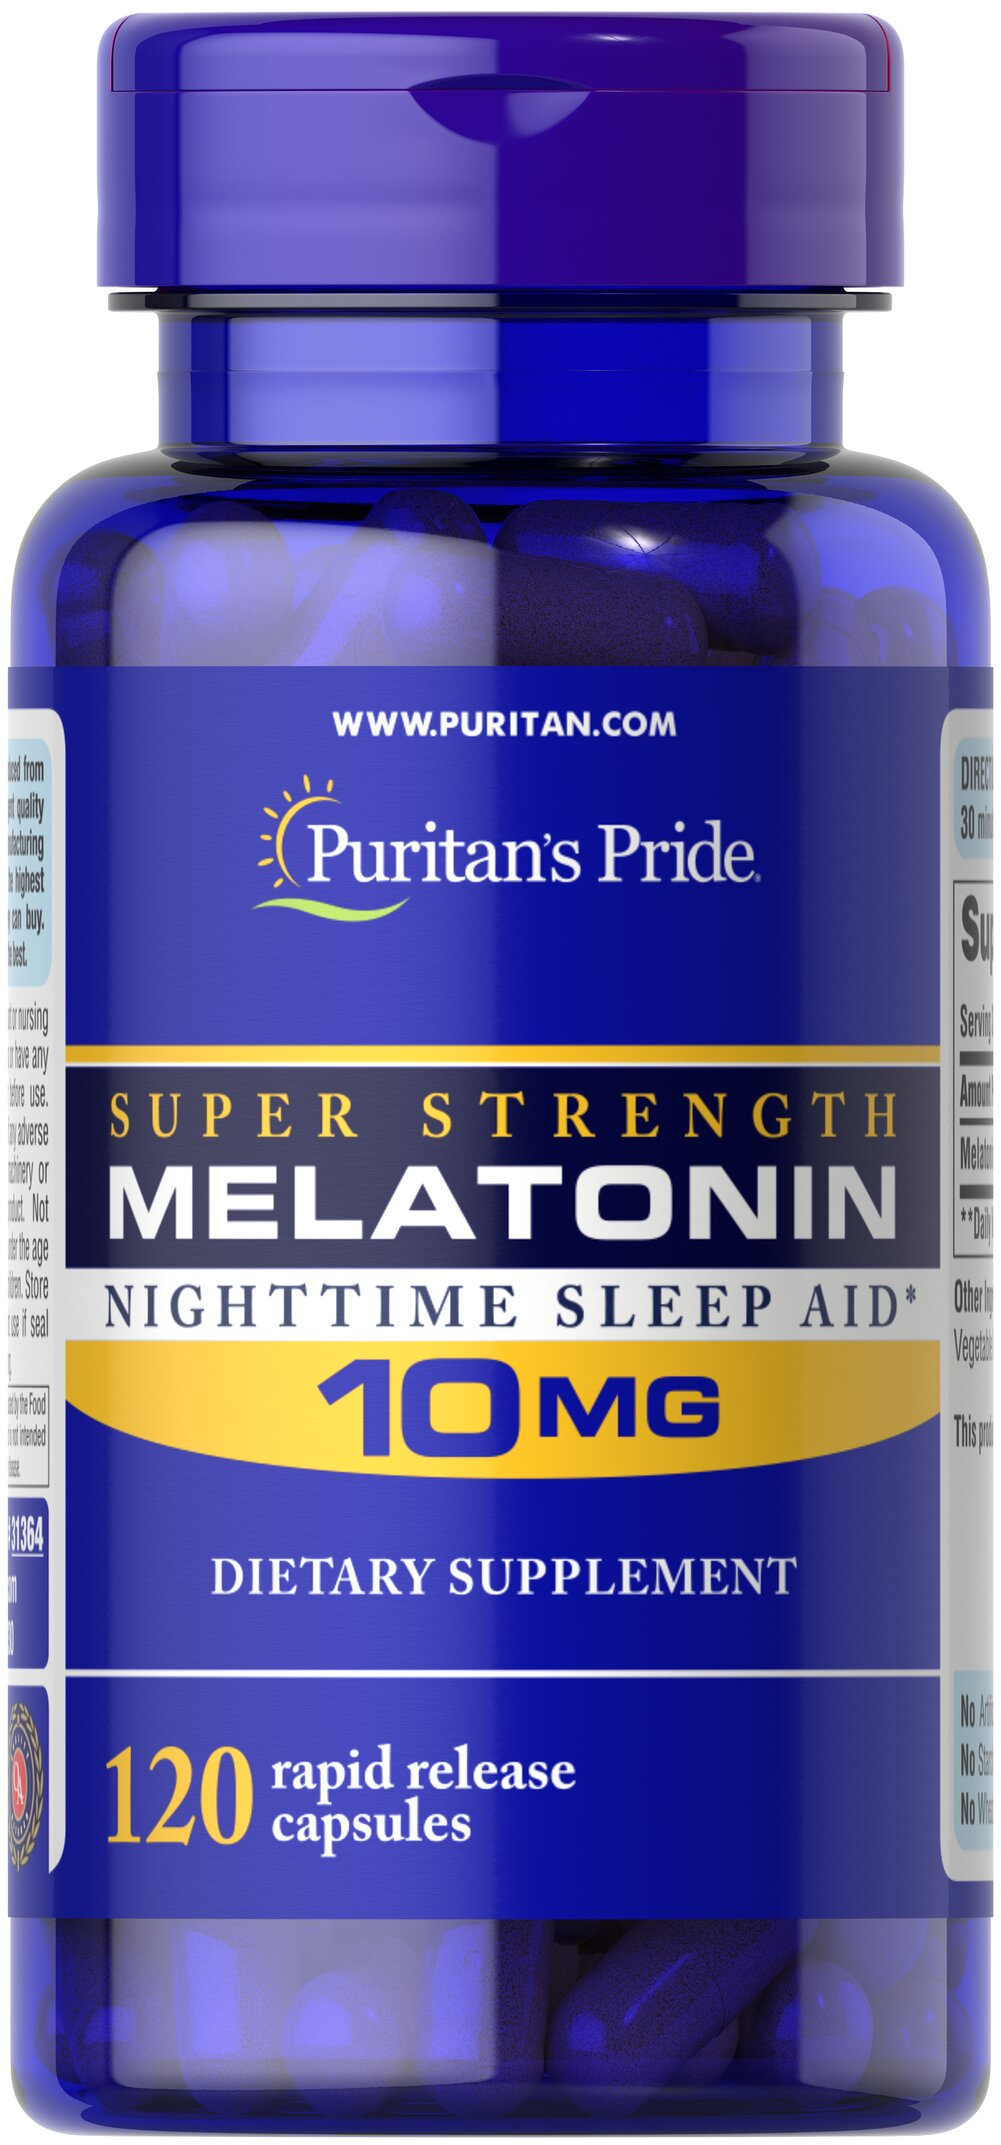 Melatonin 10 mg <p>Sometimes it's hard to unwind after a long day. That's when it's time for Melatonin, a hormone naturally produced in the body that is closely involved in the natural sleep cycle.** It's a terrific choice if you experience occasional sleeplessness or jet lag, or if you want to improve your quality of rest.**  Melatonin helps you fall asleep quickly and stay asleep longer**<br /></p> 120 Capsules 10 mg $20.99